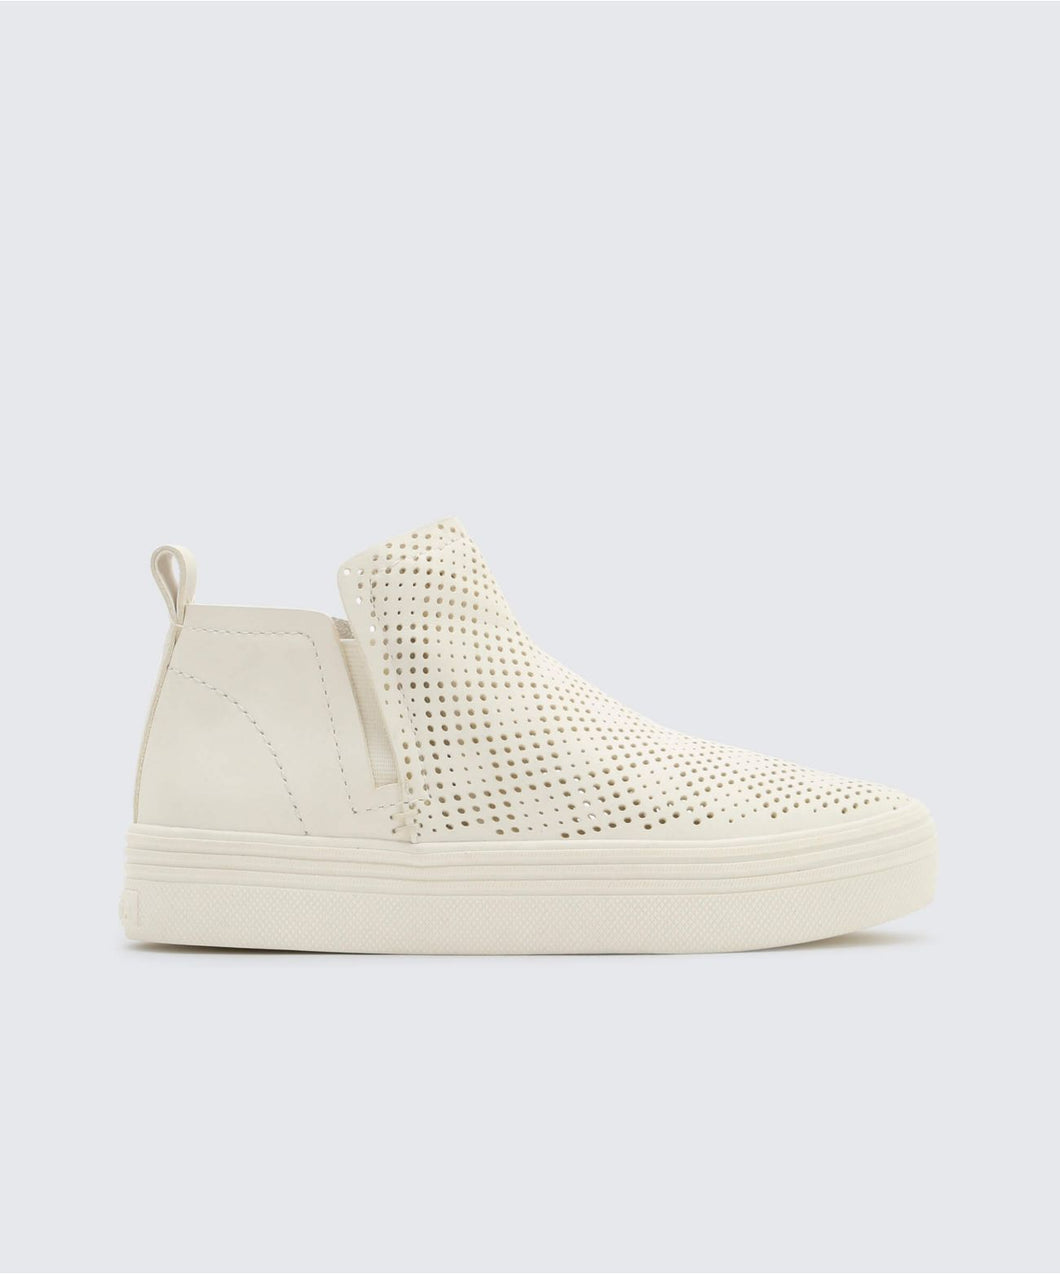 TATE PERF SNEAKERS OFF WHITE -   Dolce Vita